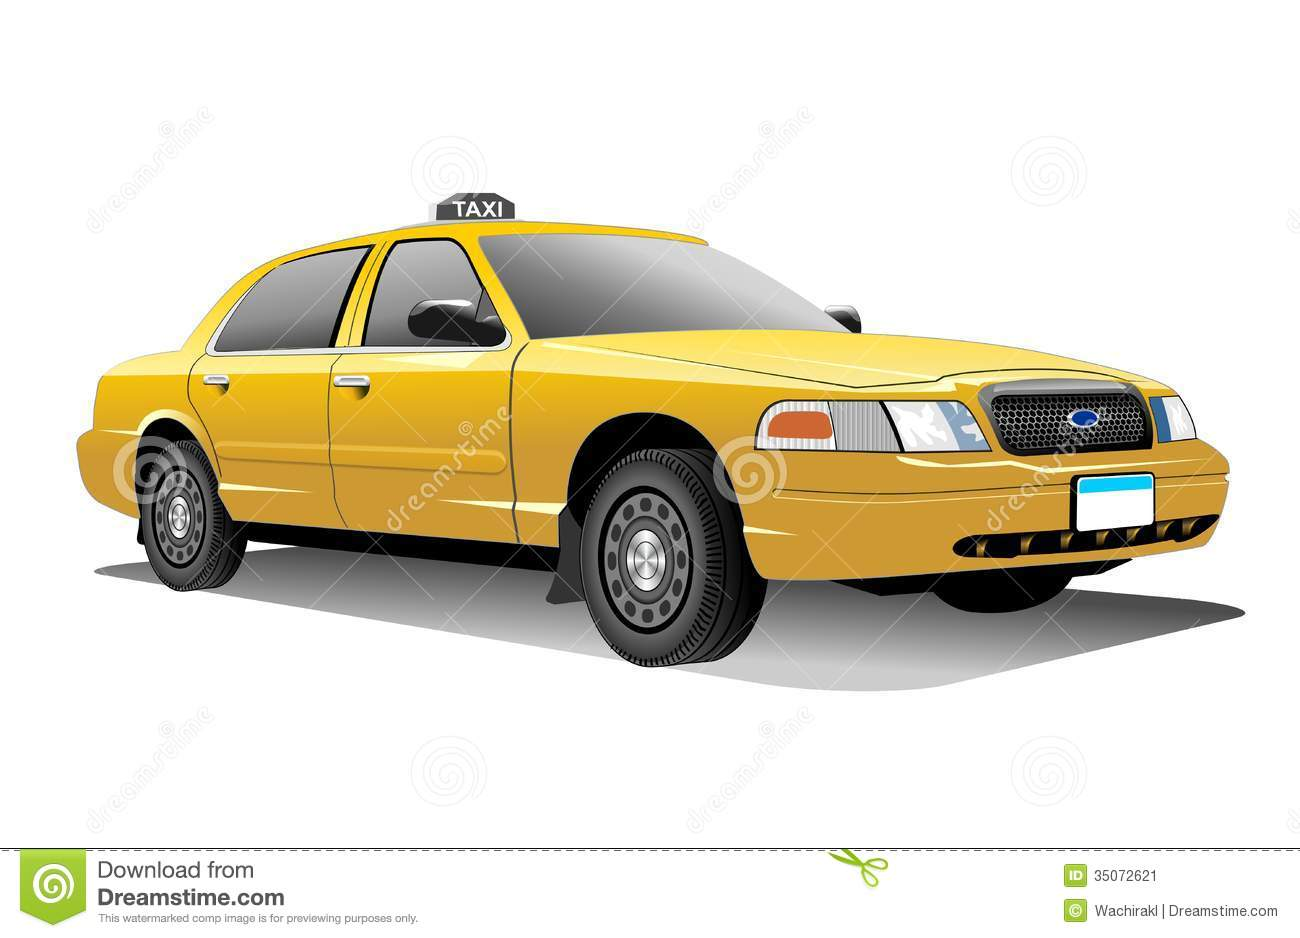 New York yellow Taxi vactor and with transparency background (png) .